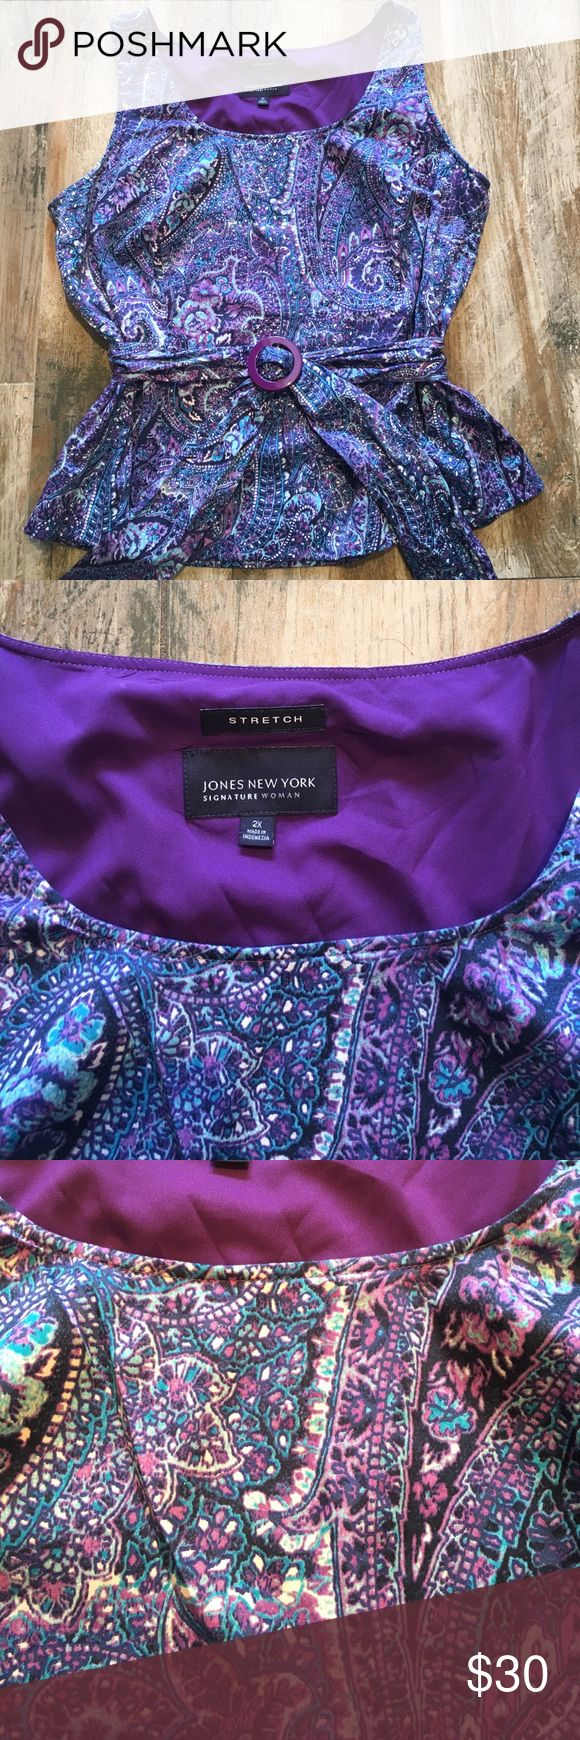 Jones New York or top Beautiful Jones New York top with sash that crosses in the front. It creates a beautiful waistline. From Pit to pit lying flat 24 inches. Length from back collar to bottom 24 inches. In EUC. All measurements are approximate. I do my best.❤️ Jones New York Tops Blouses